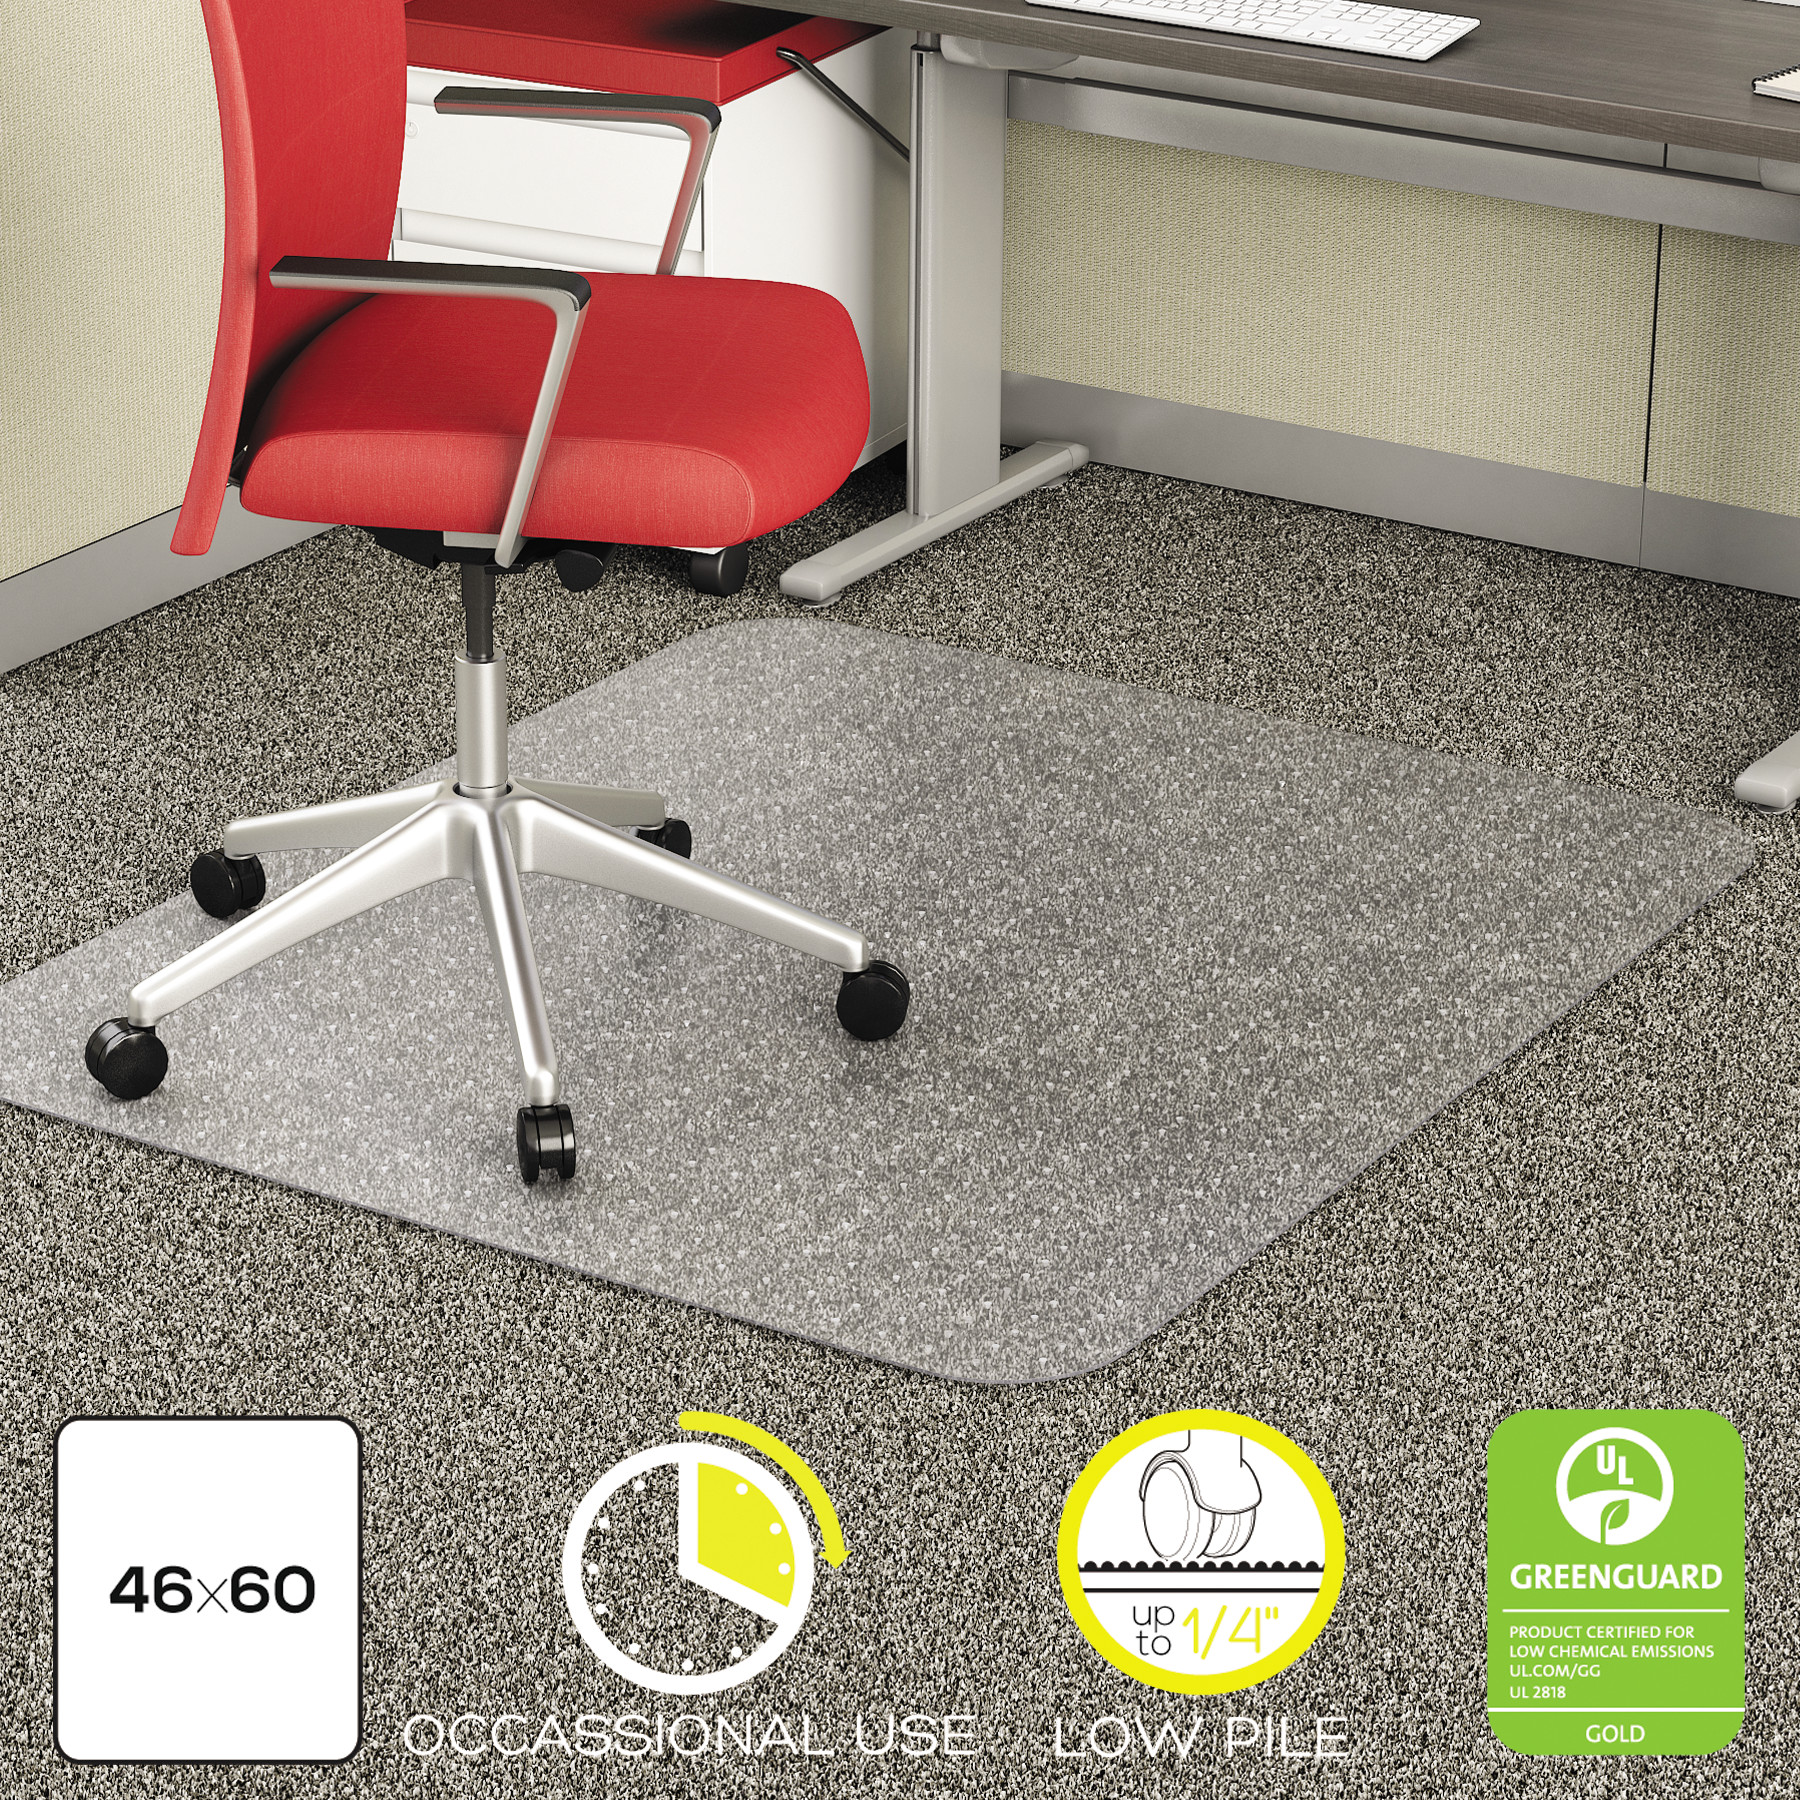 Deflecto EconoMat 46 x 60 Chair Mat for Low Pile Carpet, Rectangular